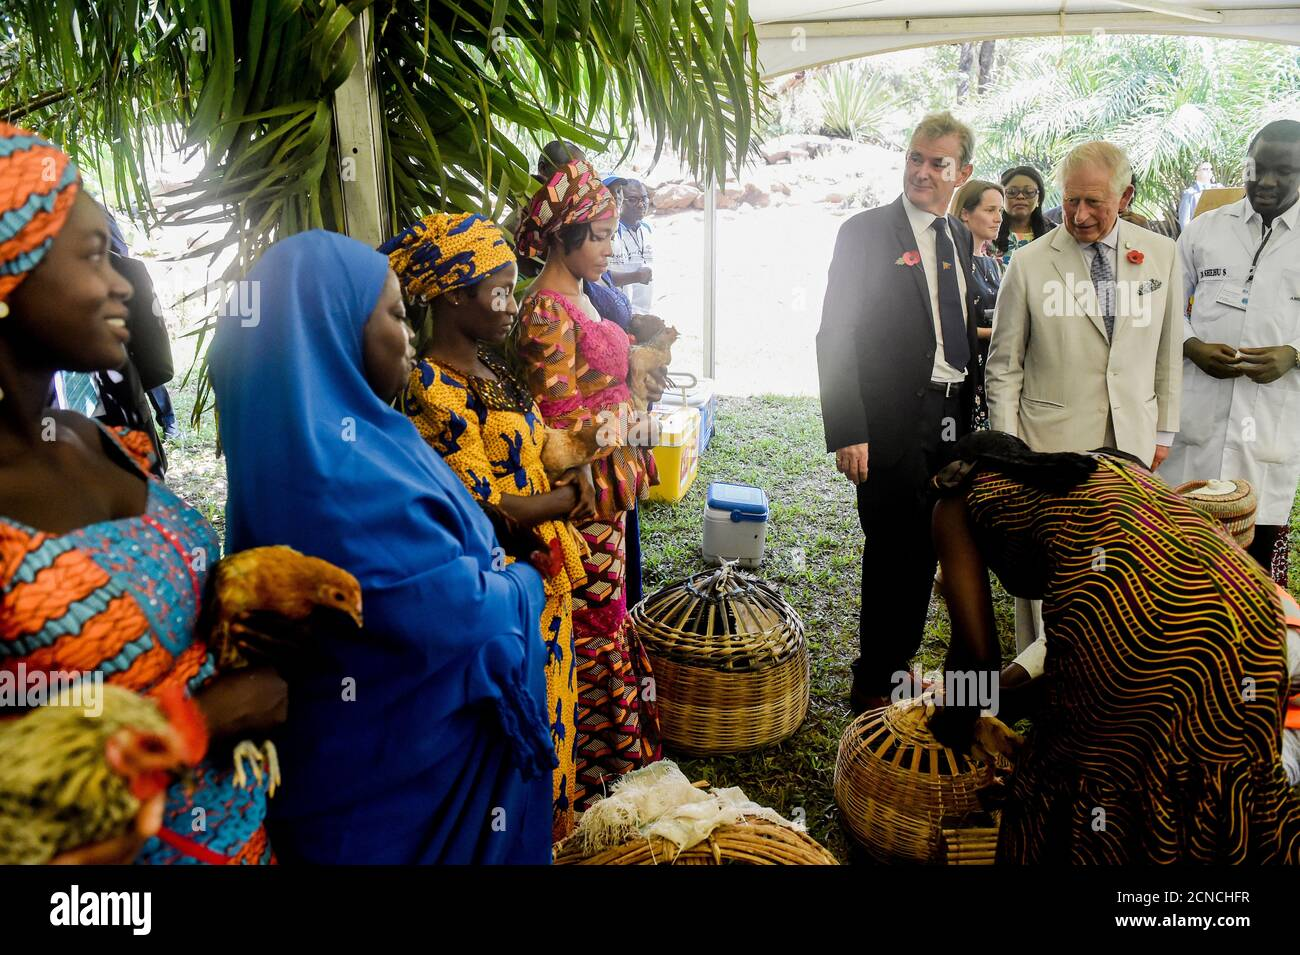 Britain S Charles Prince Of Wales Meets Women Involved In Securing Rural Livelihood At The Sarius Palmetum